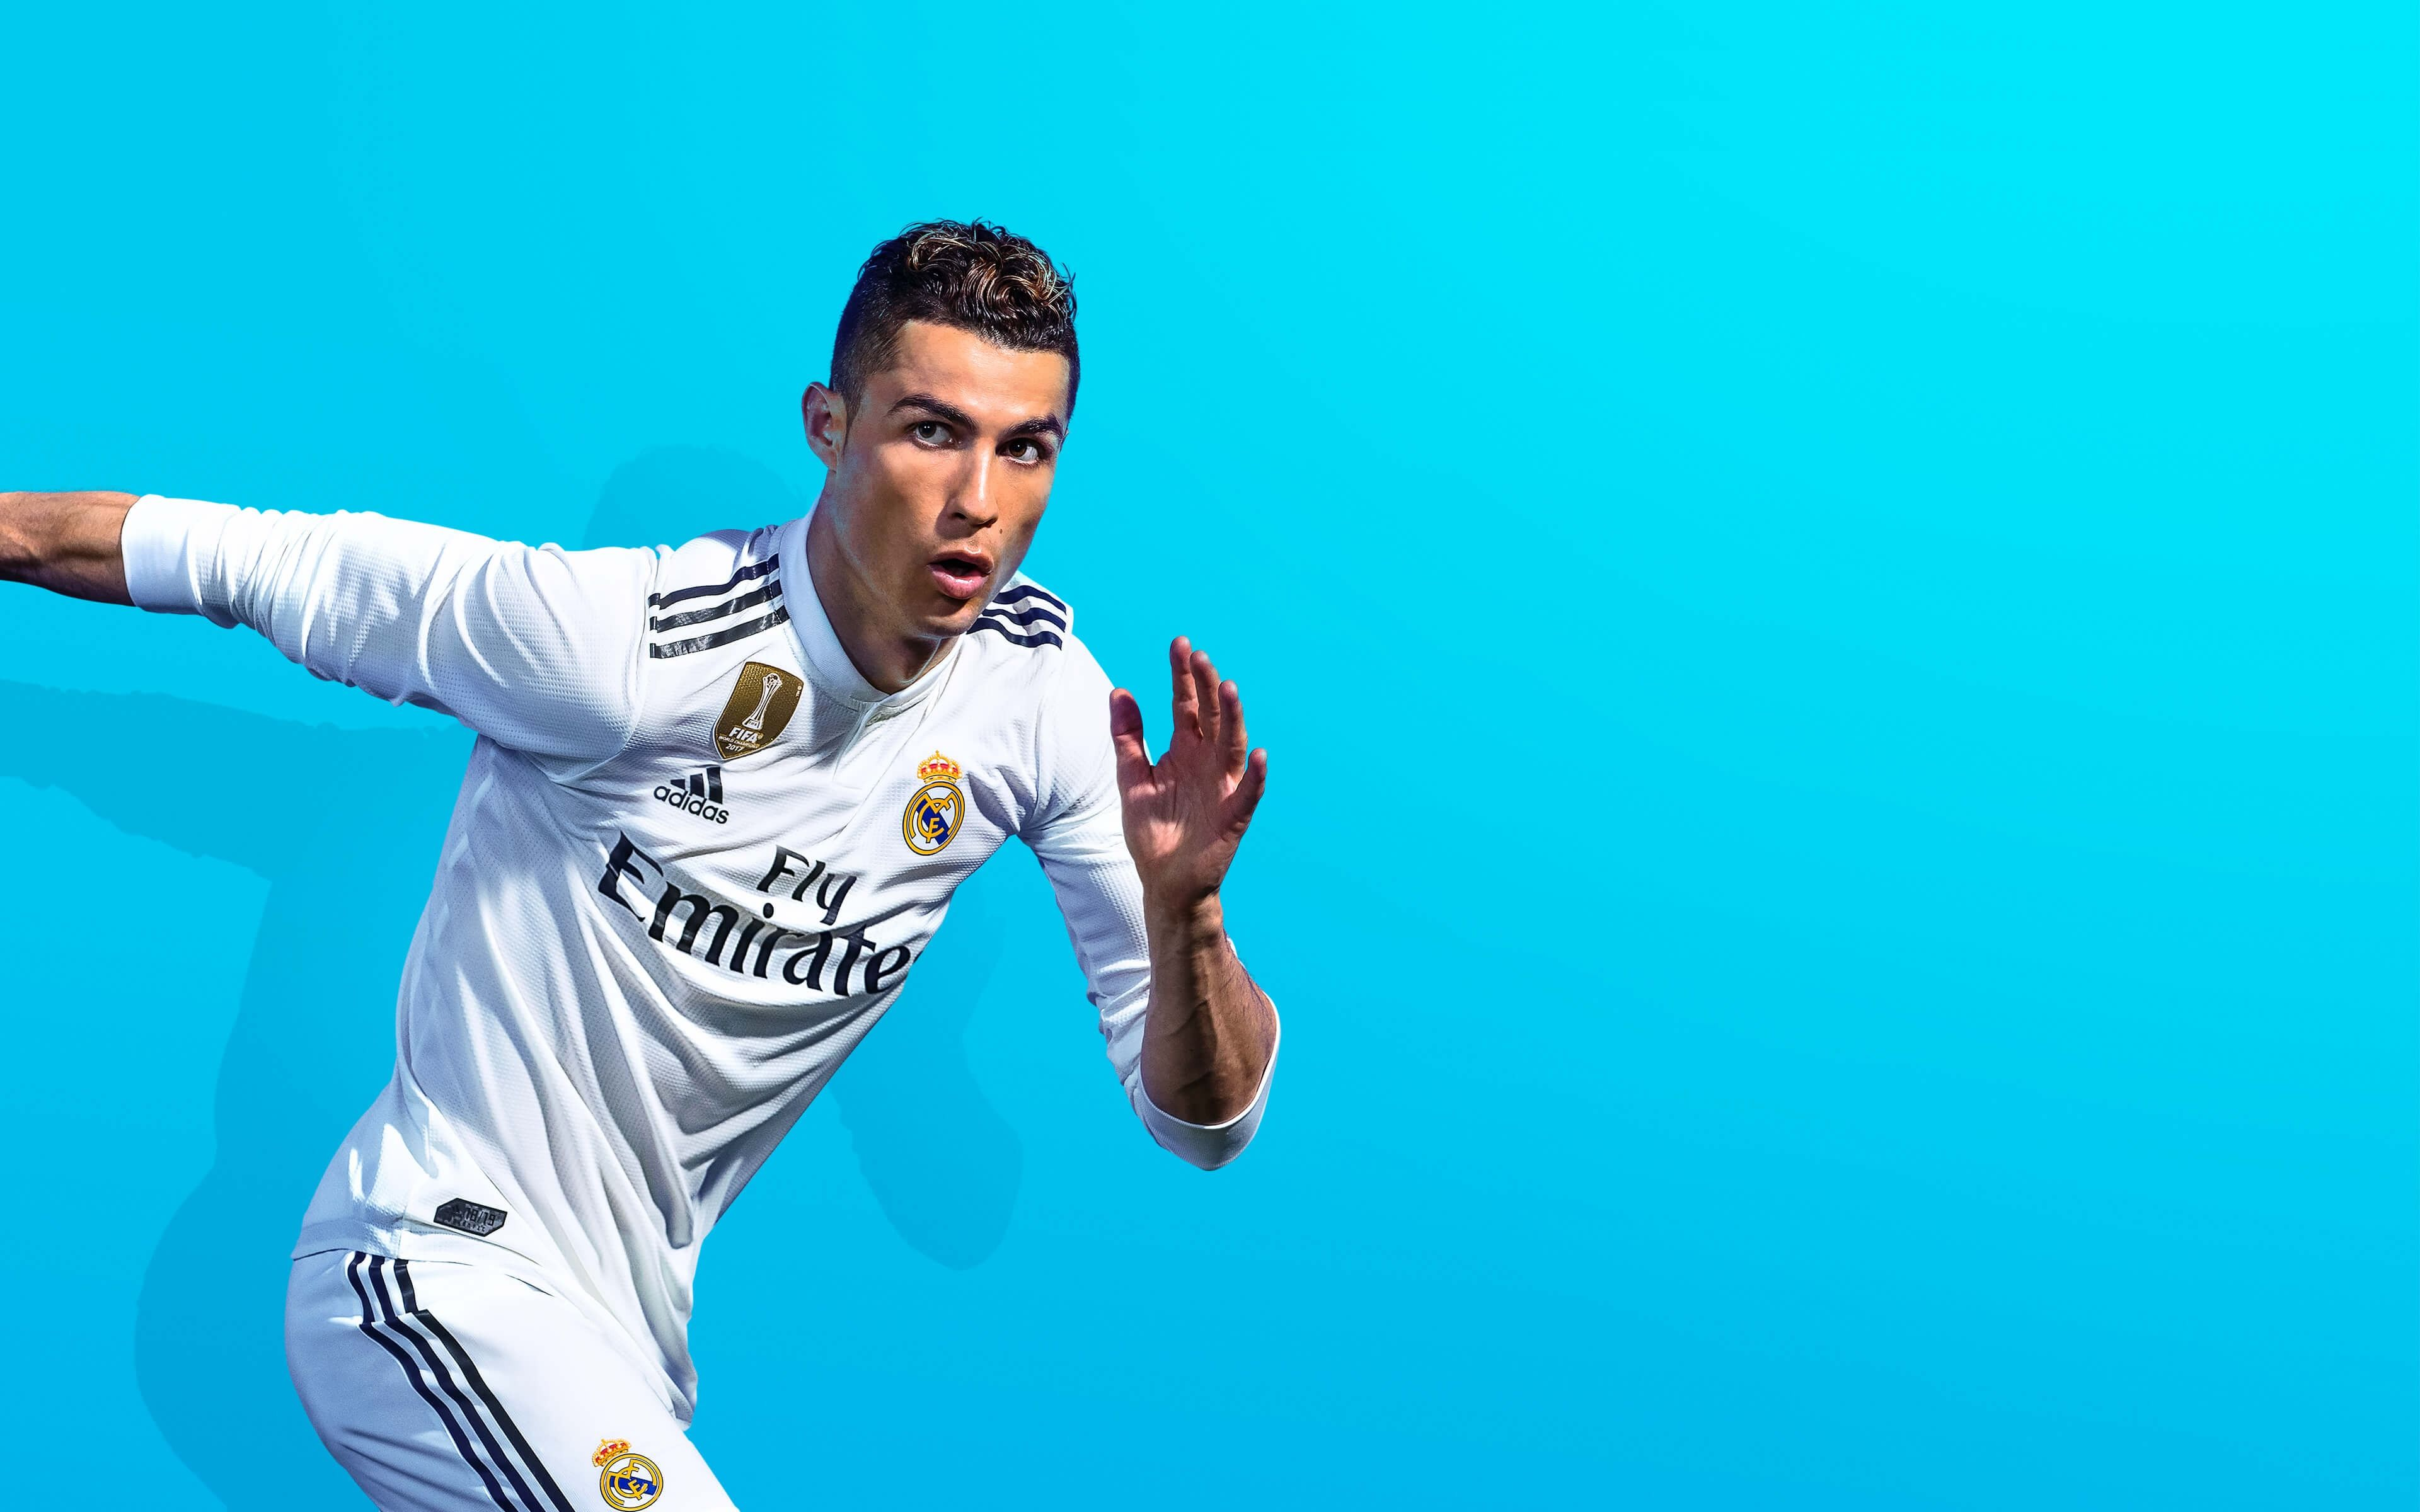 Cristiano Ronaldo FIFA 19 Game 4K Wallpaper 3840x2400